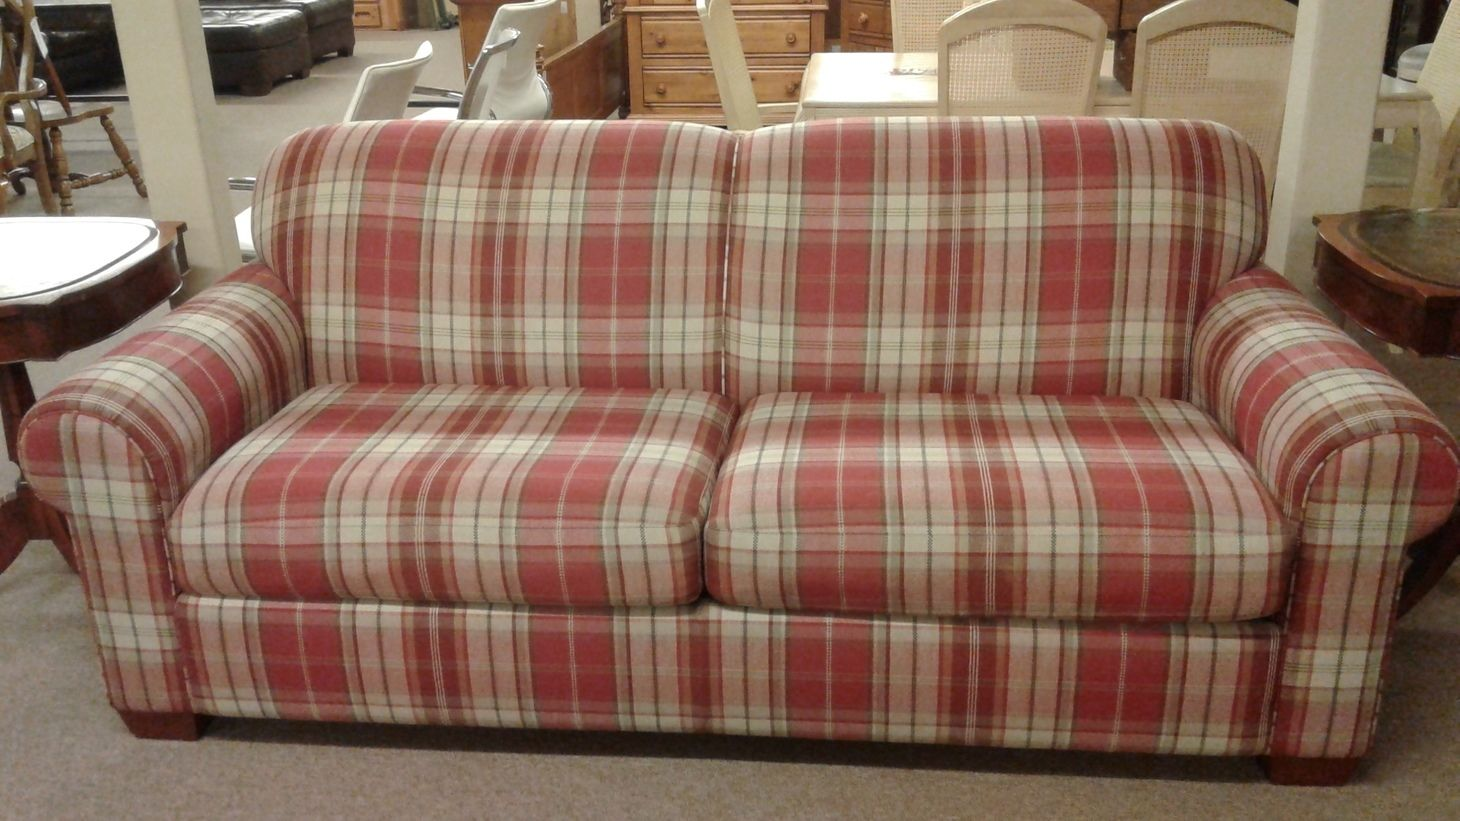 taylor king sofas craigslist sectional sofa lazyboy plaid | delmarva furniture consignment